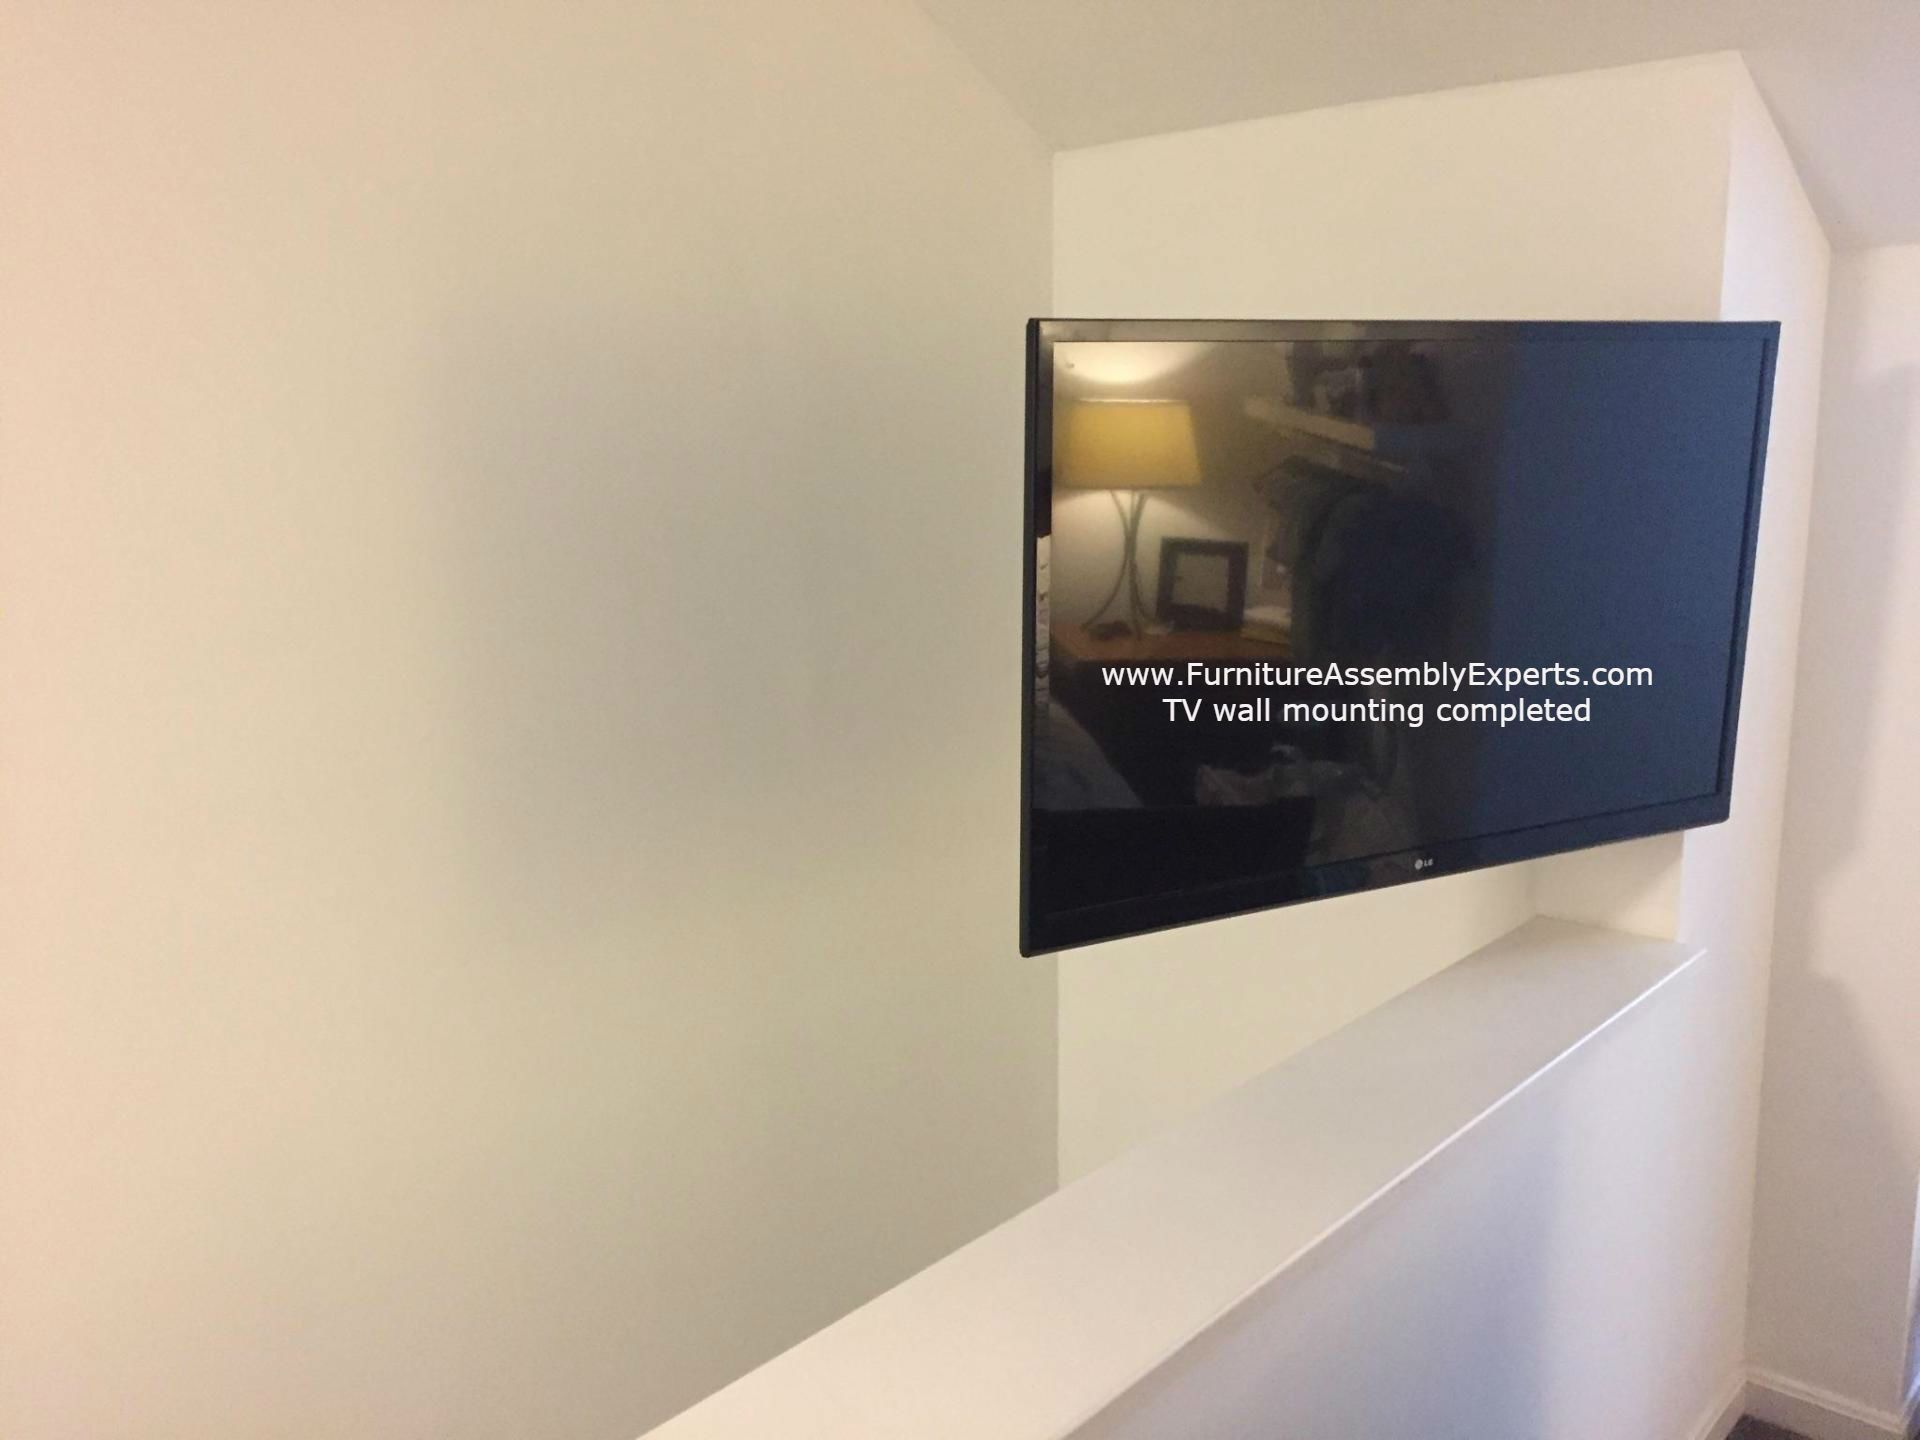 TV wall installation completed in catonsville Maryland. we provide TV wall installation service for customer